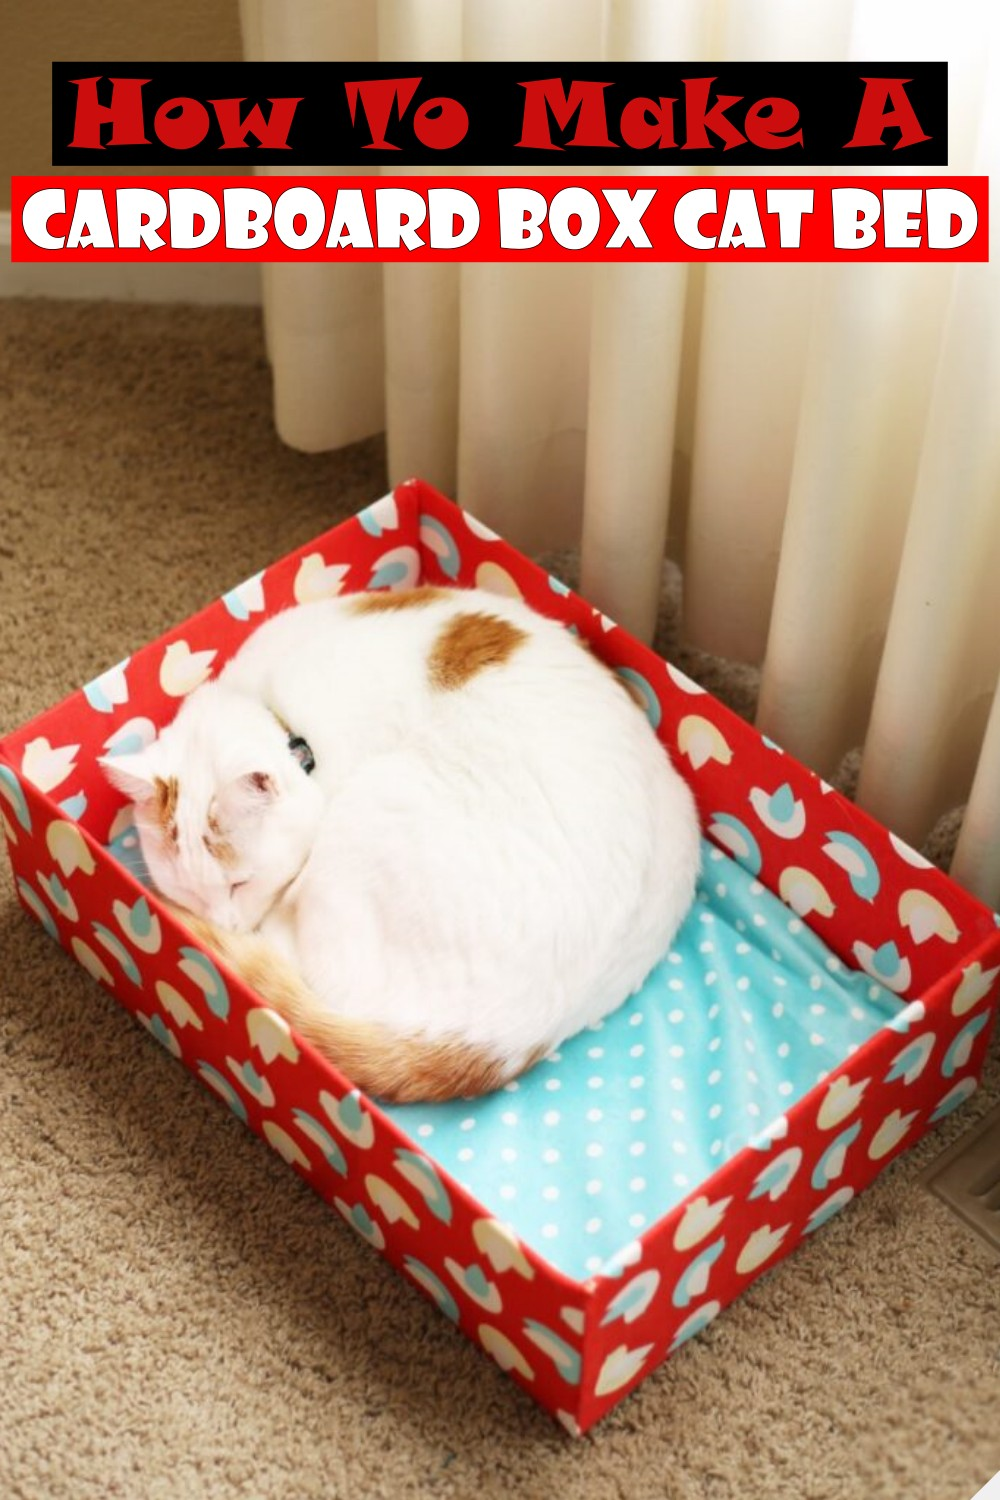 How To Make A Cardboard Box Cat Bed